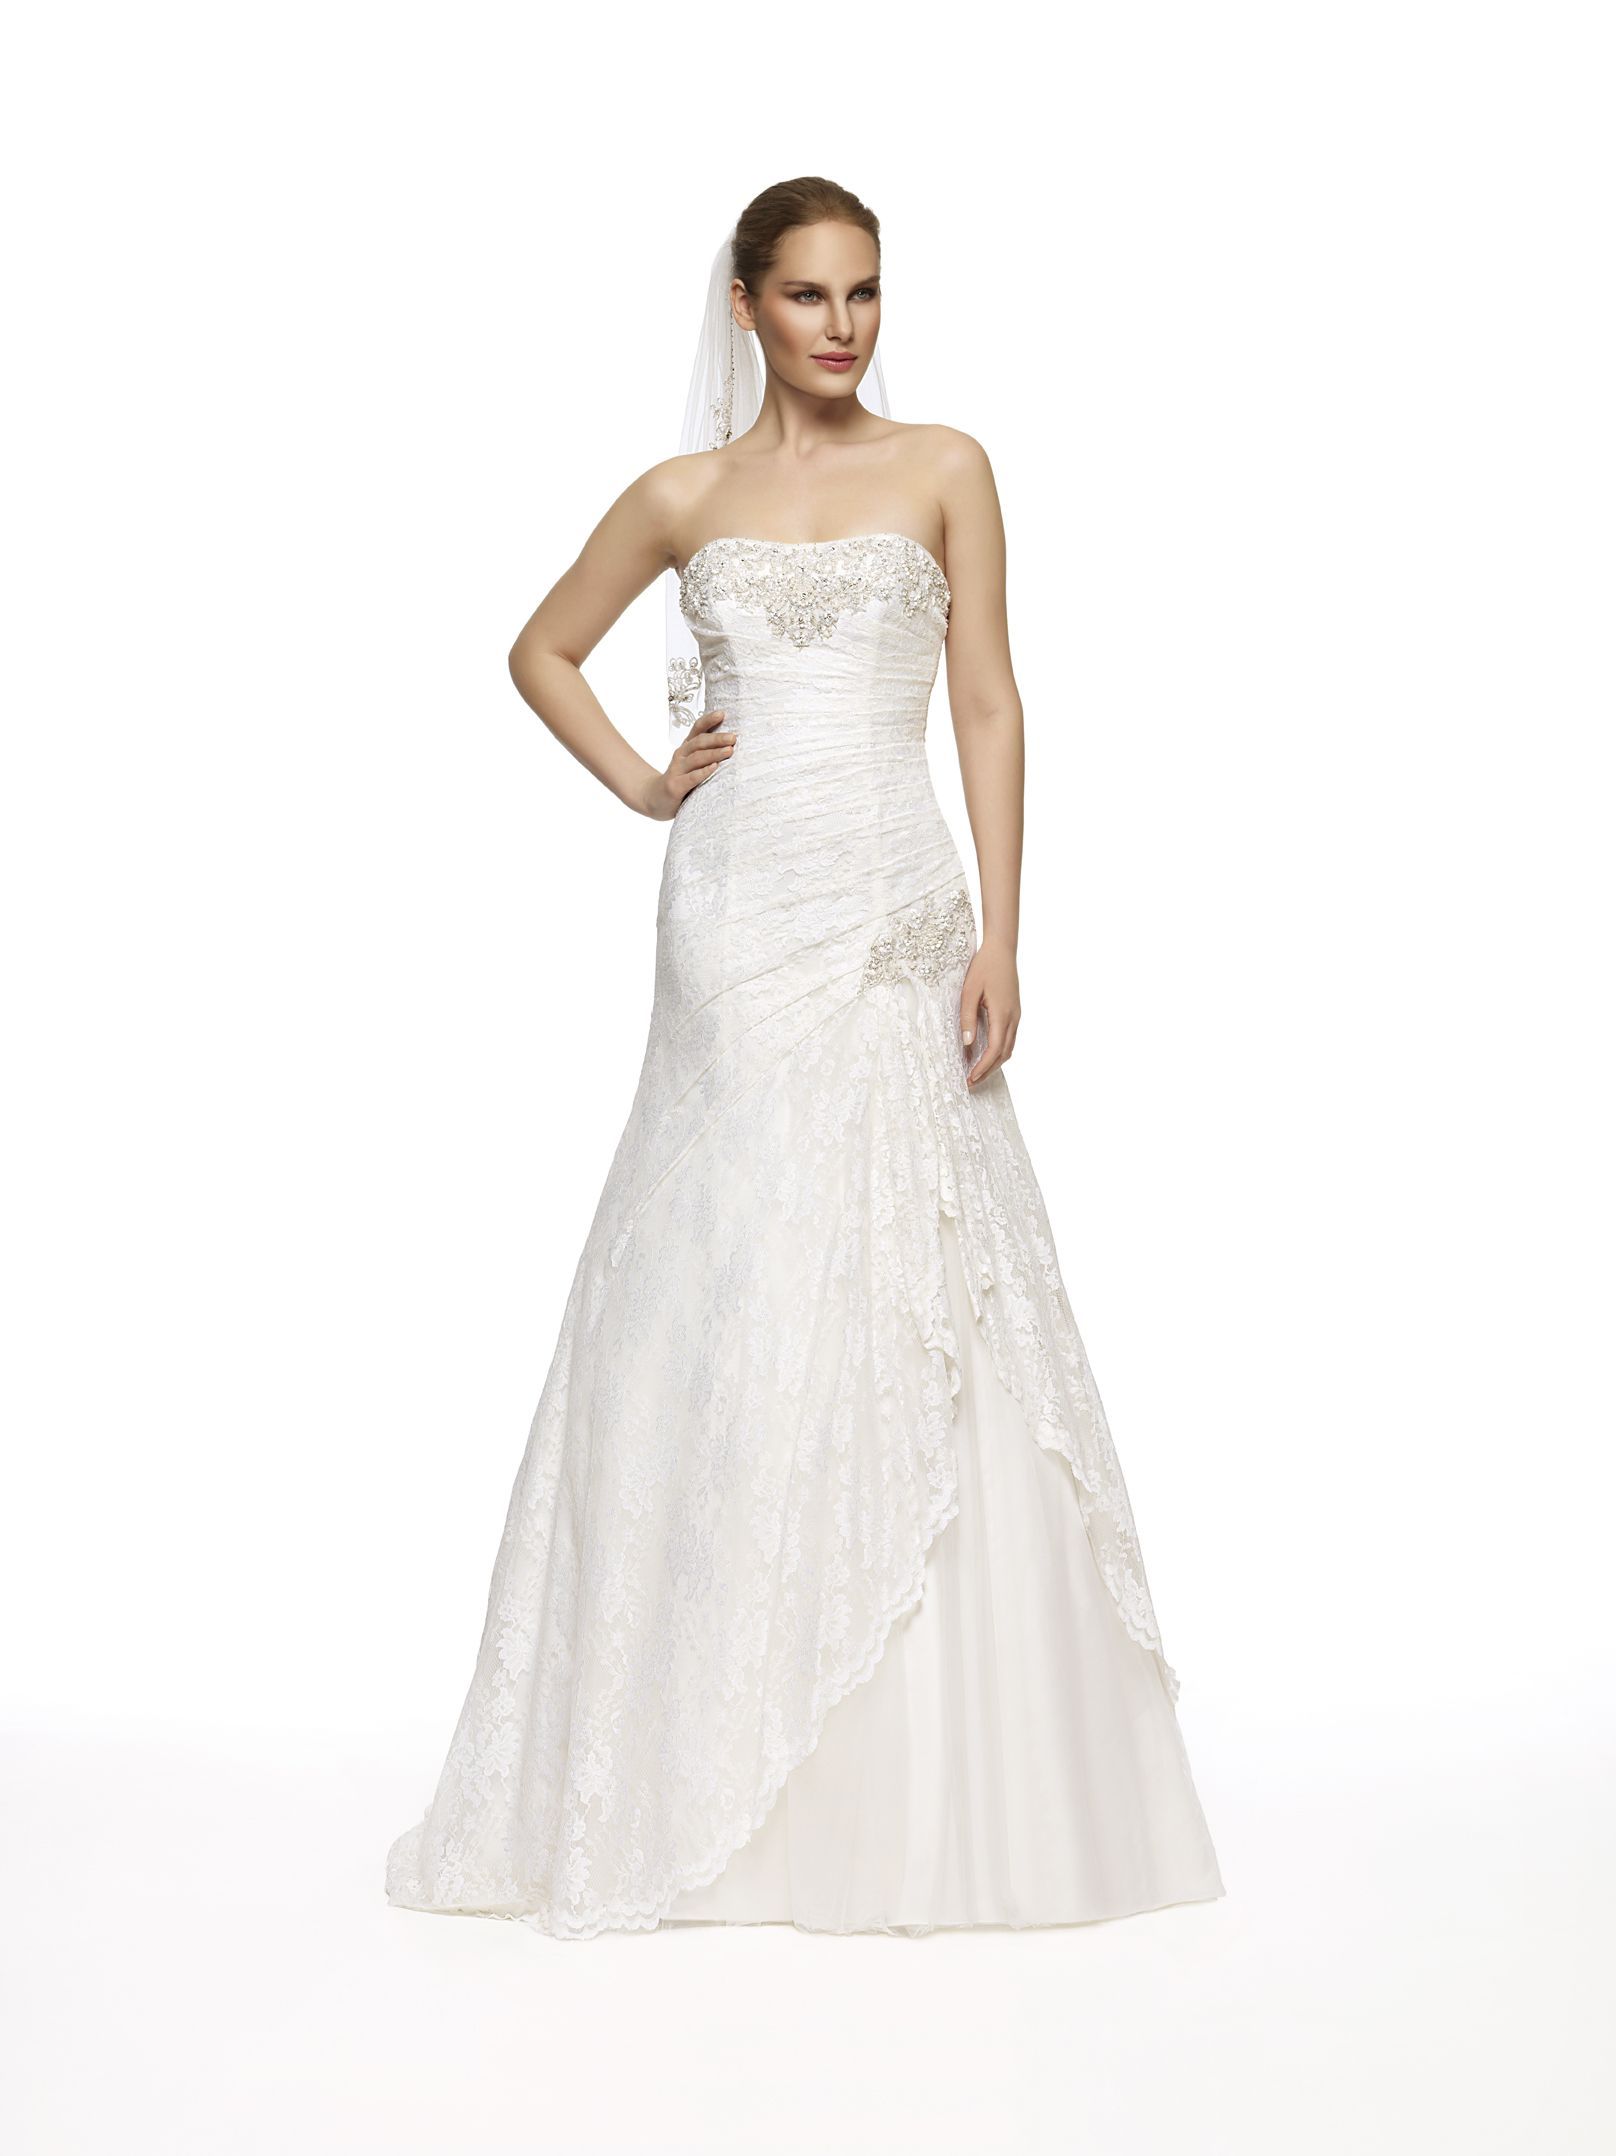 Oleg Cassini Bridal Gown Looks Like David S Bridal Yp3344